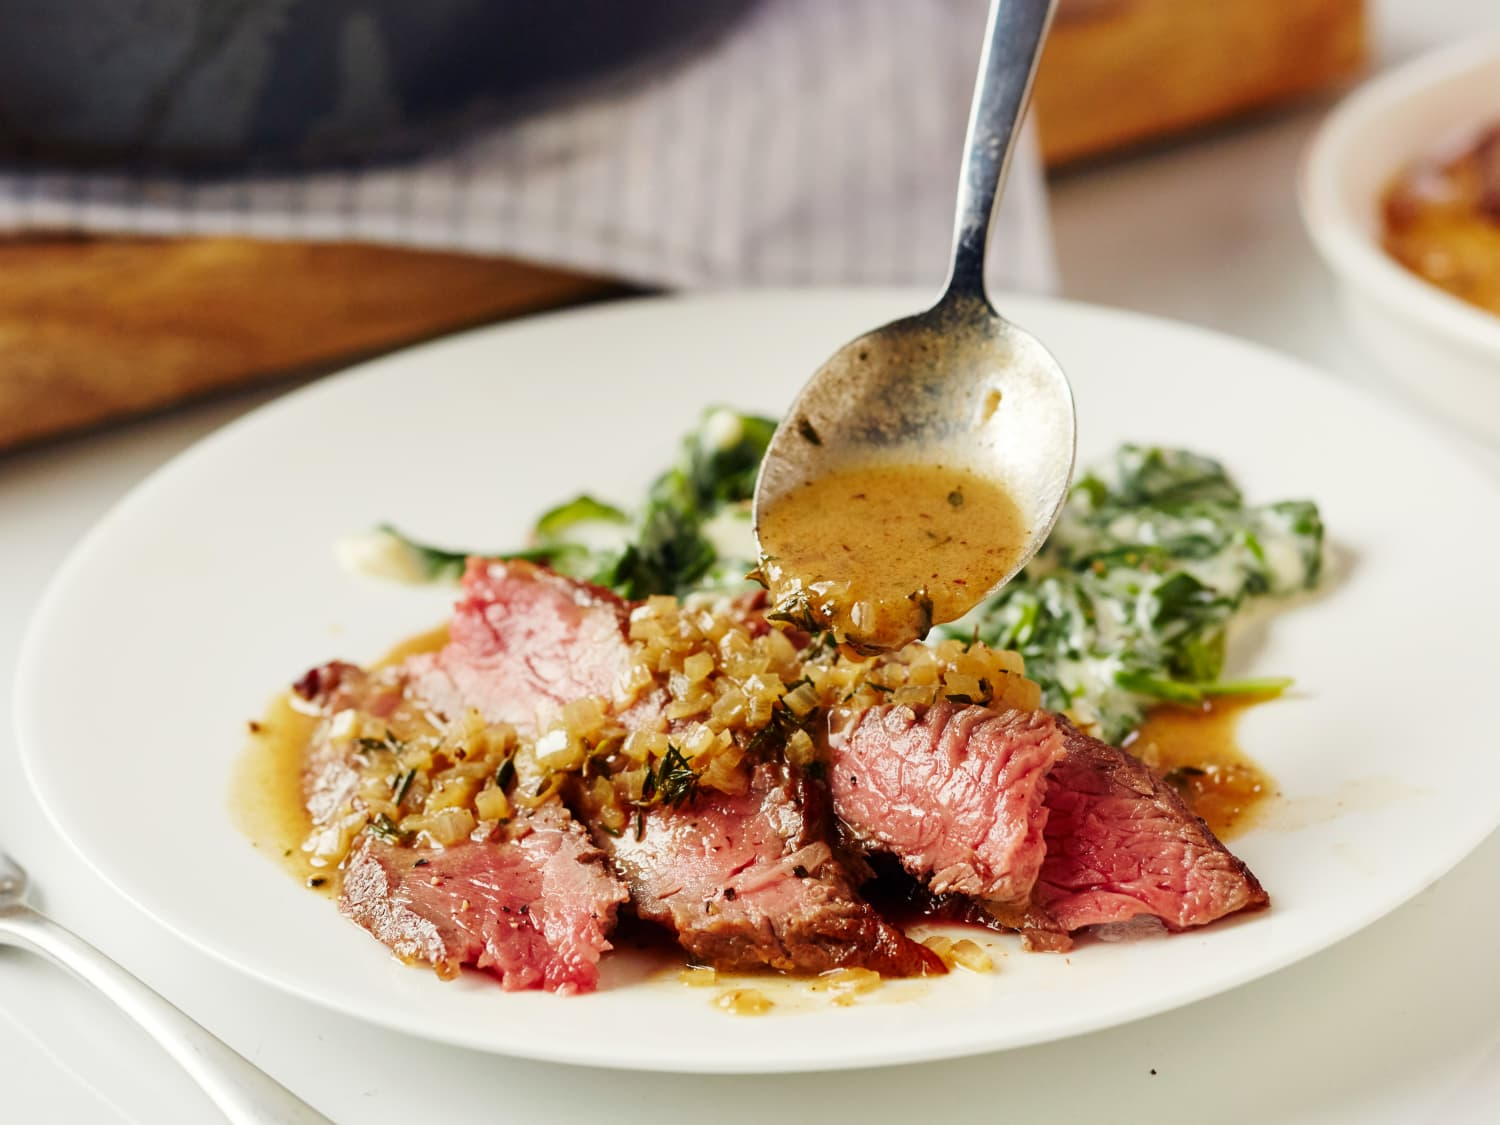 How To Make A Pan Sauce From Steak Drippings Kitchn,Color Combination For Green And Blue